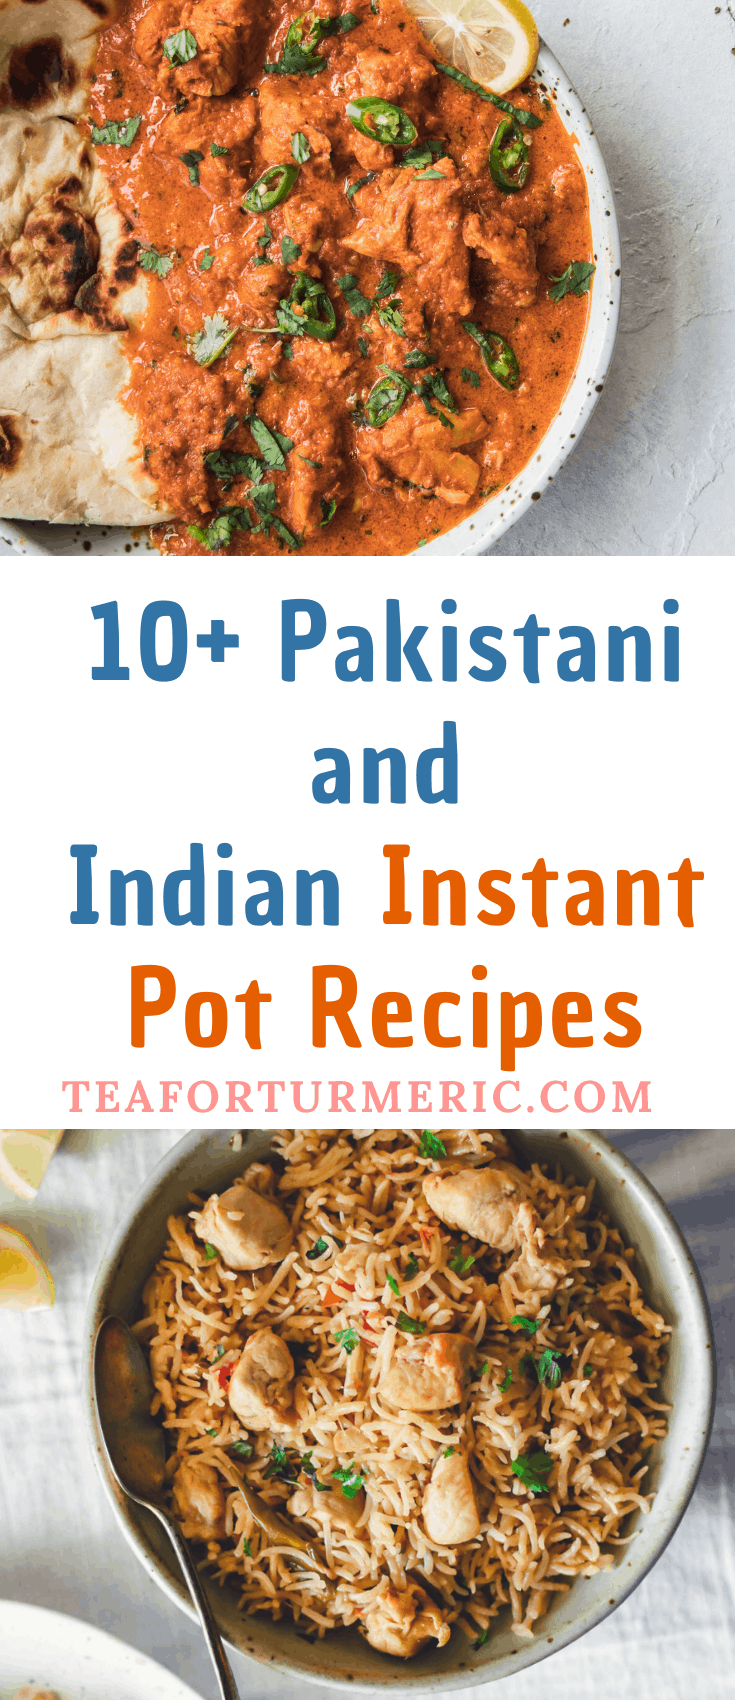 10+ Easy Pakistani and Indian Instant Pot recipes that are perfect for every day! These tried-and-tested recipes are delicious, healthy, and 100% delicious. #pakistani #indianinstantpot #instantpot